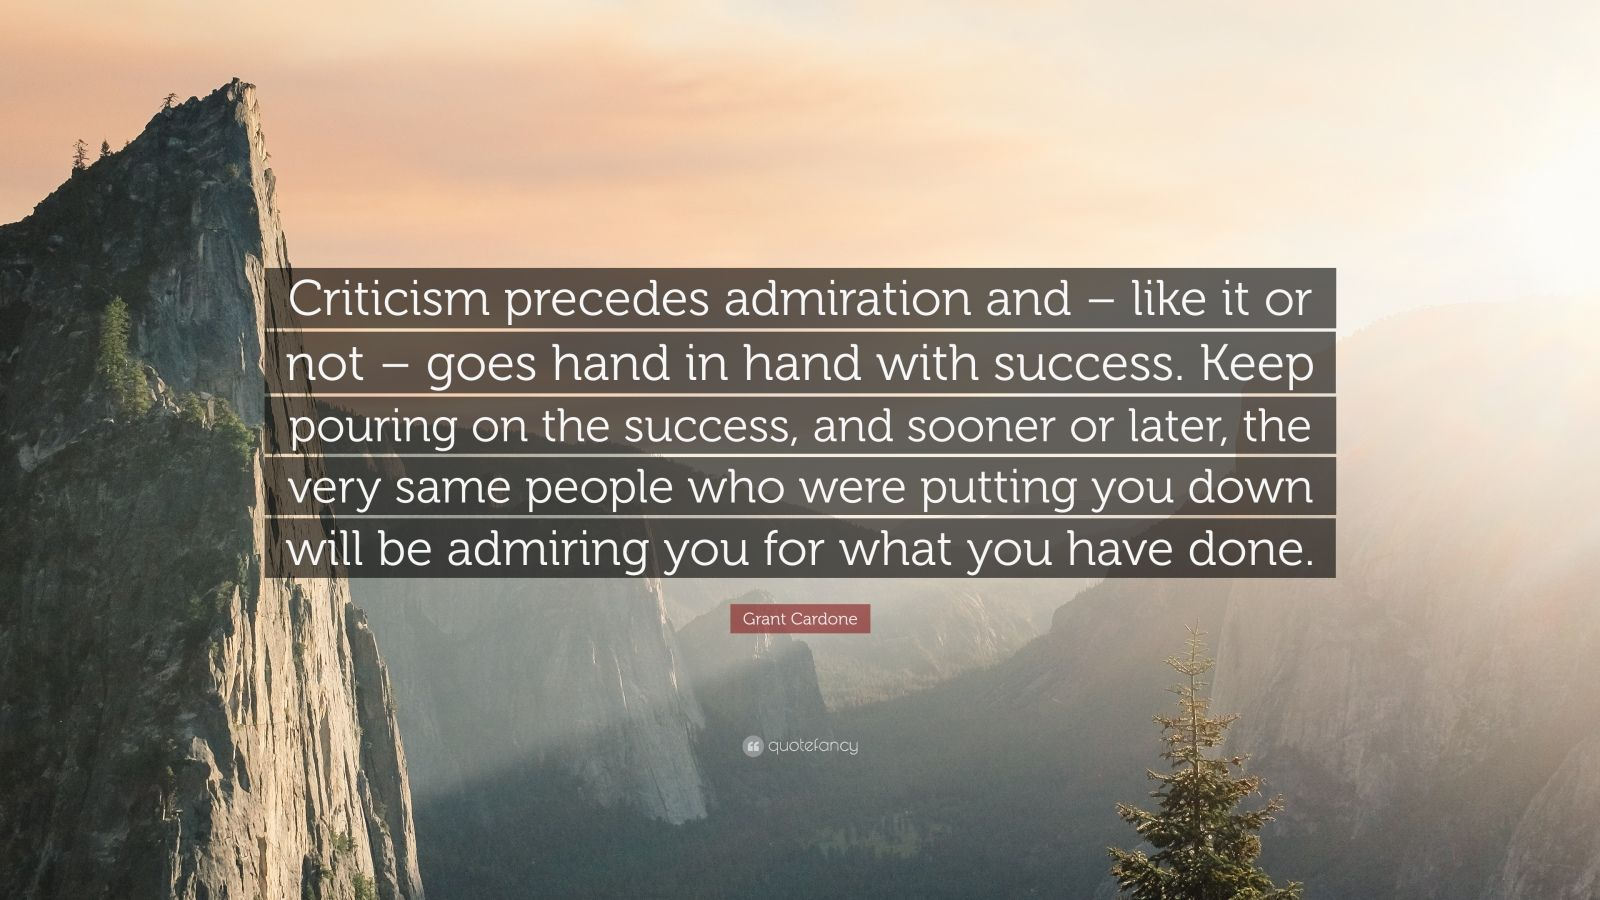 """Grant Cardone Quote: """"Criticism precedes admiration and – like it or not – goes hand in hand with success. Keep pouring on the success, and sooner or later, the very same people who were putting you down will be admiring you for what you have done."""""""